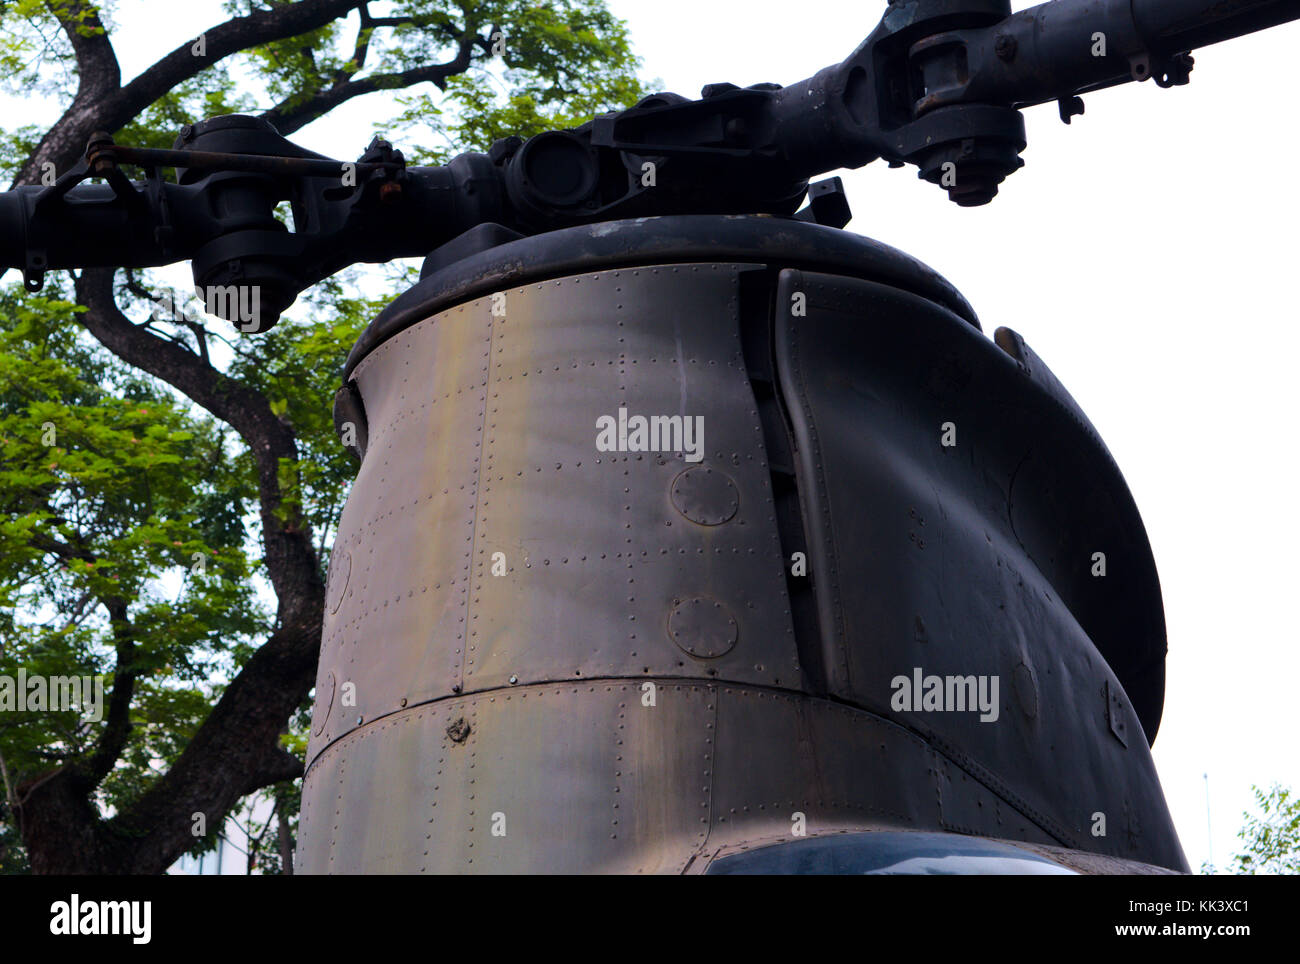 Helicopter rotor - Stock Image